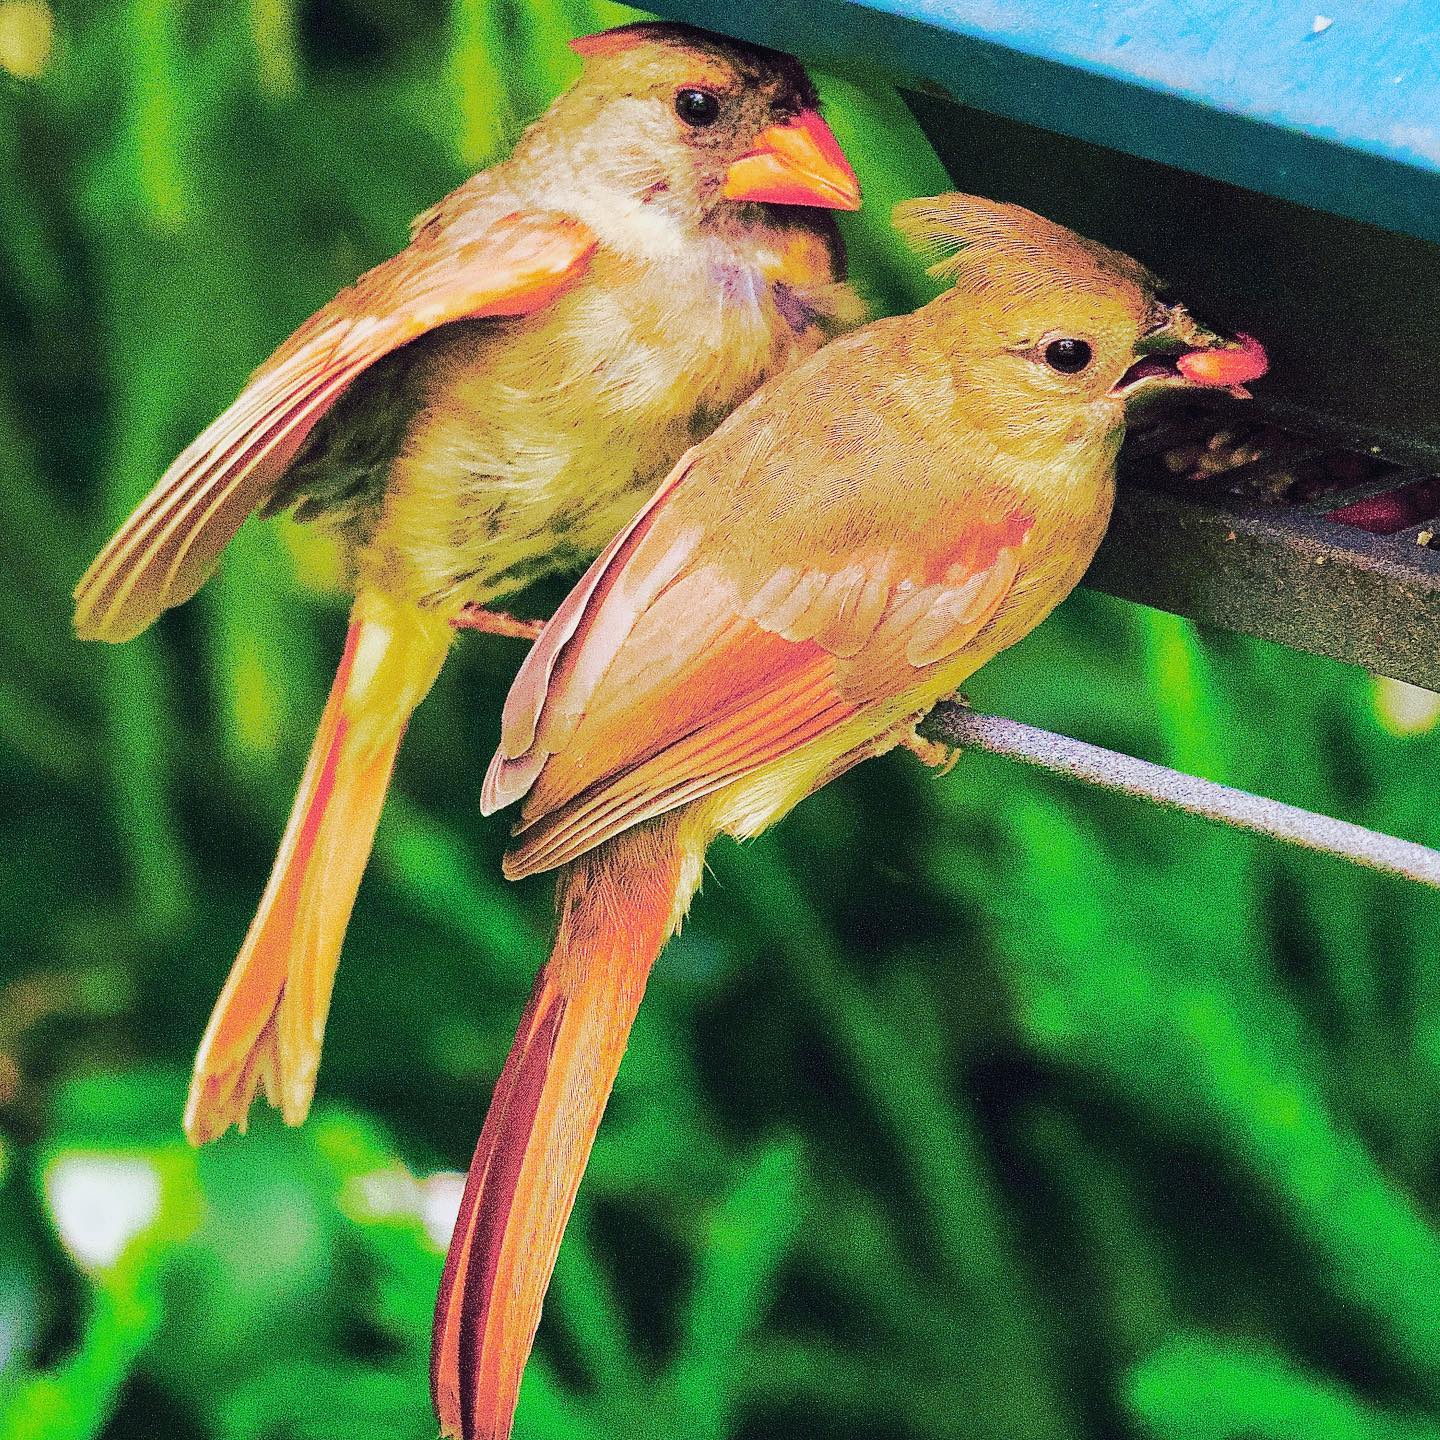 The mom escorted the fledgling to the feeder a few days ago and helped her with her meal. She watched as her little girl nibbled on a tiny seed. The next day the dad came and checked the feeder first. The mom flew in for a quick bite only after that. The little girl looked around as if figuring out her environment while she perched on the hanger. She sat down on the waterer for a while and took a few sips. She got something to nibble and took flight. The dad flies in for his meal finally, after his girls are all done.  P.C. @tejjas_kaul